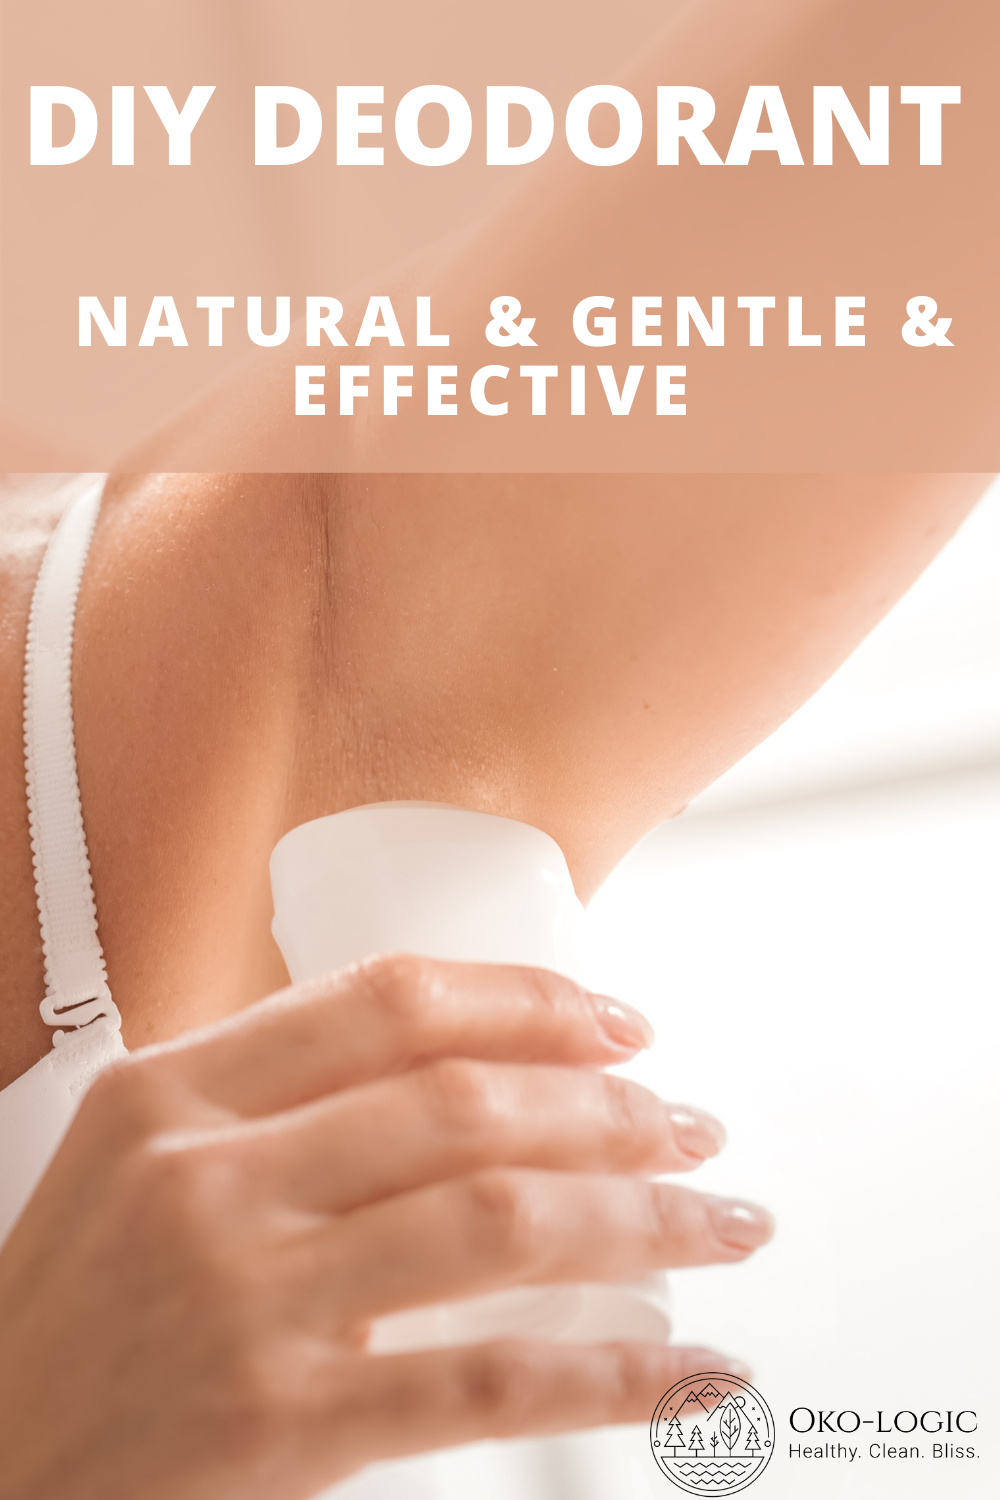 How a Homemade Deodorant with Bentonite Clay Keeps Your Armpits Dry and Healthy